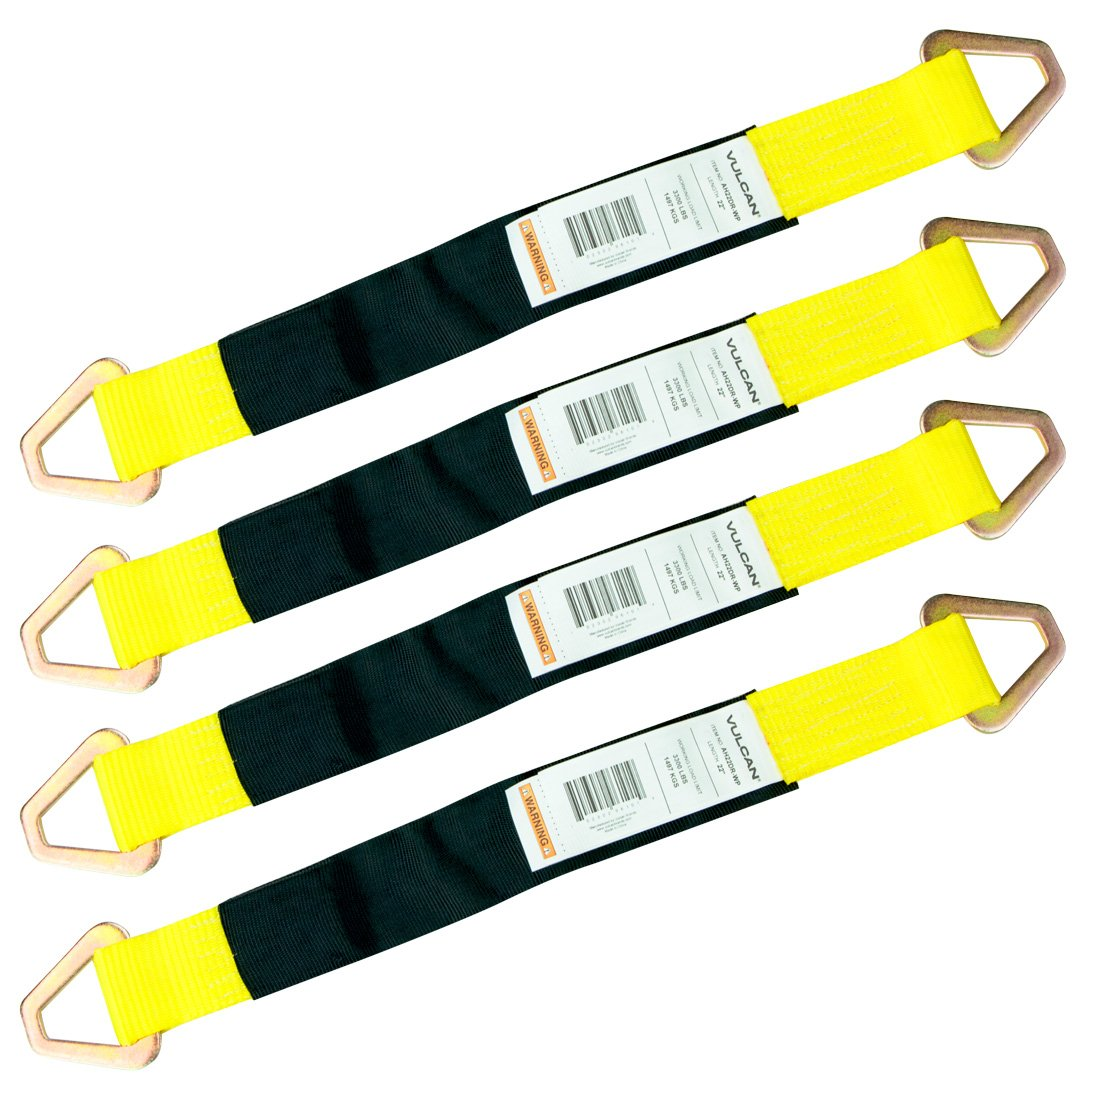 Vulcan Classic Yellow 1-Ply Automobile Tie Down Axle Straps with Wear Pads (2'' Wide x 22'' Long Straps - 4 Pack)